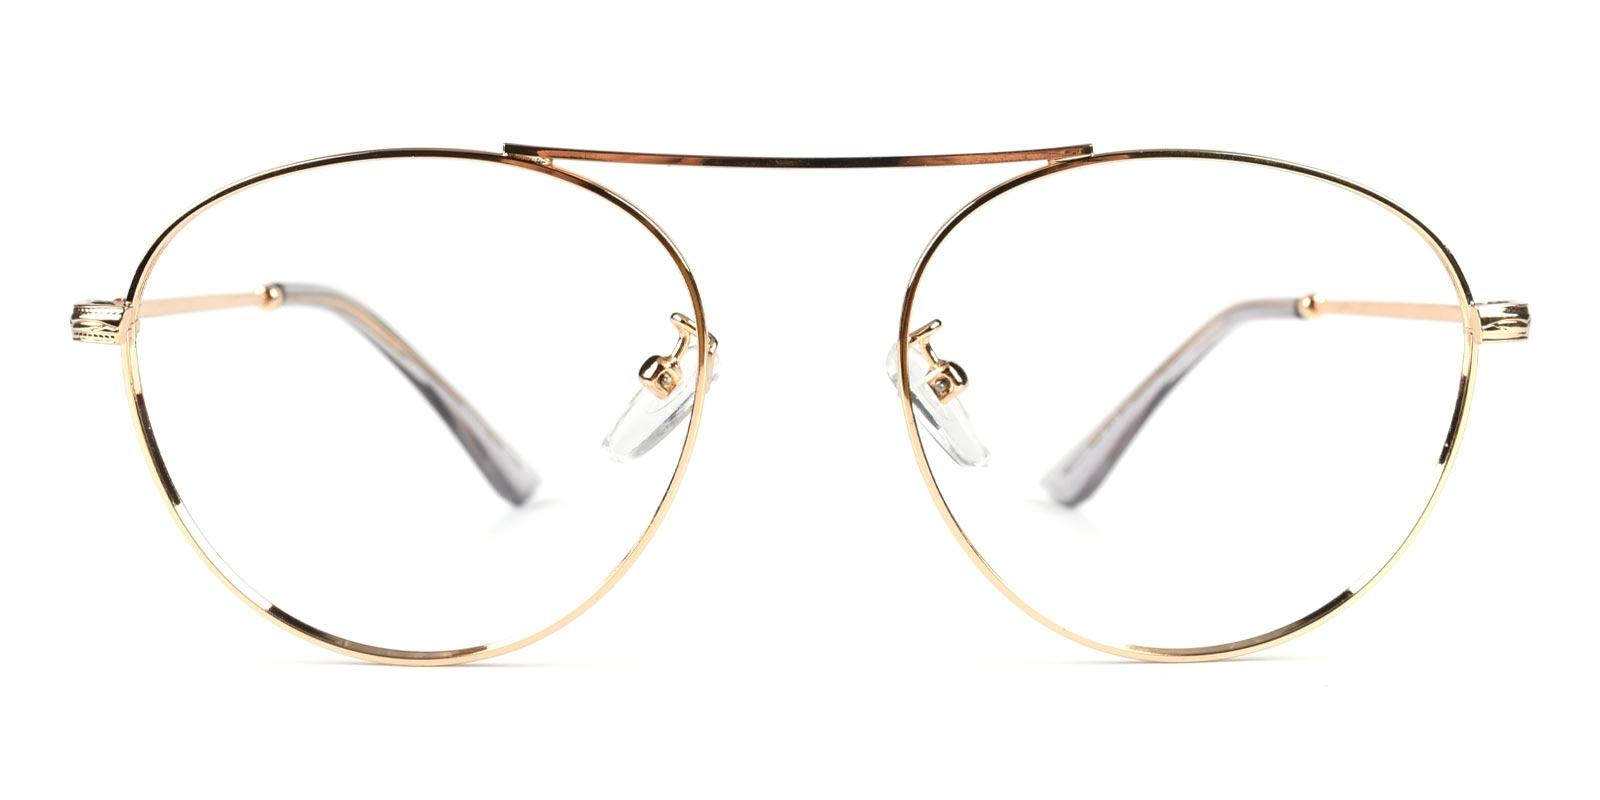 Fleybean-Gold-Aviator-Metal-Eyeglasses-additional2